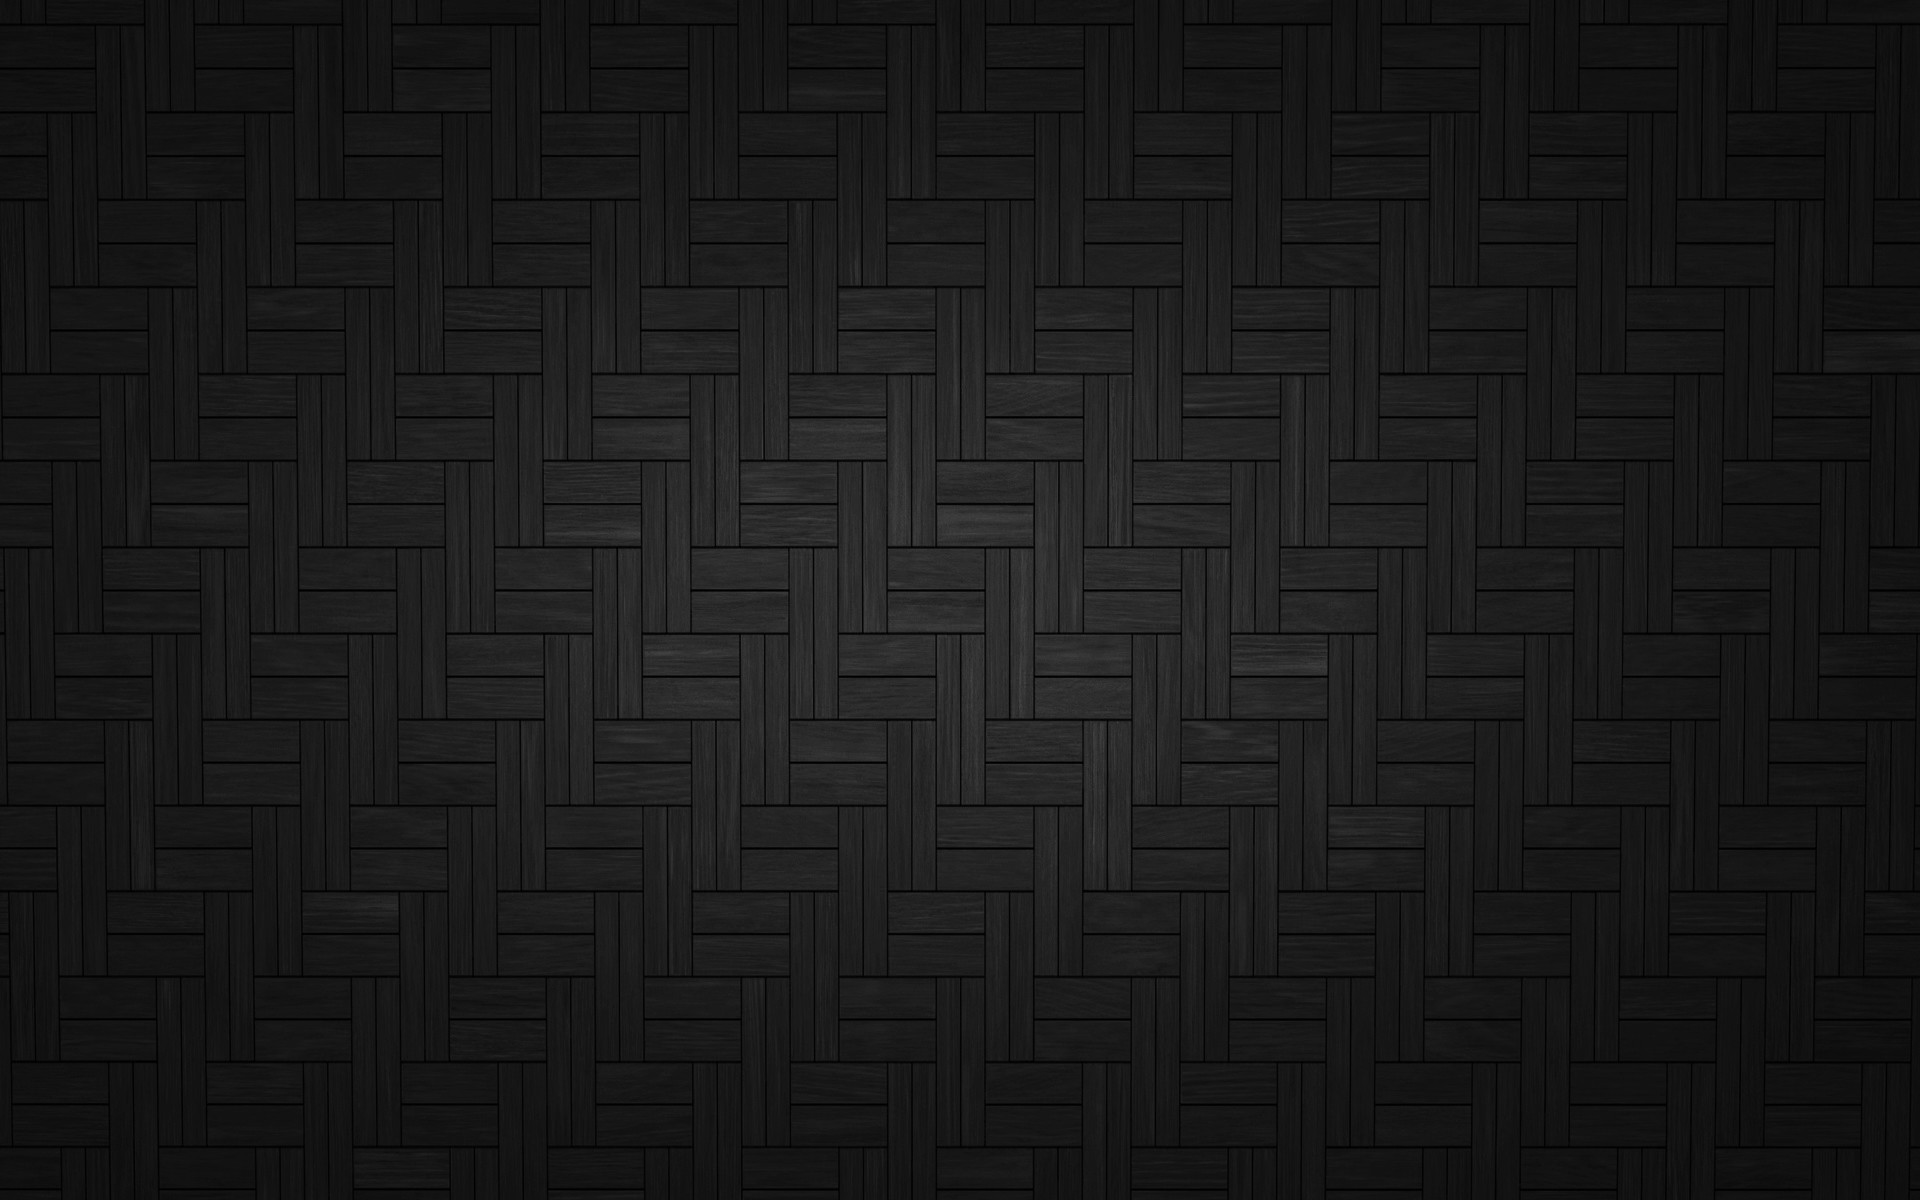 1920x1200 Black Wallpaper 10